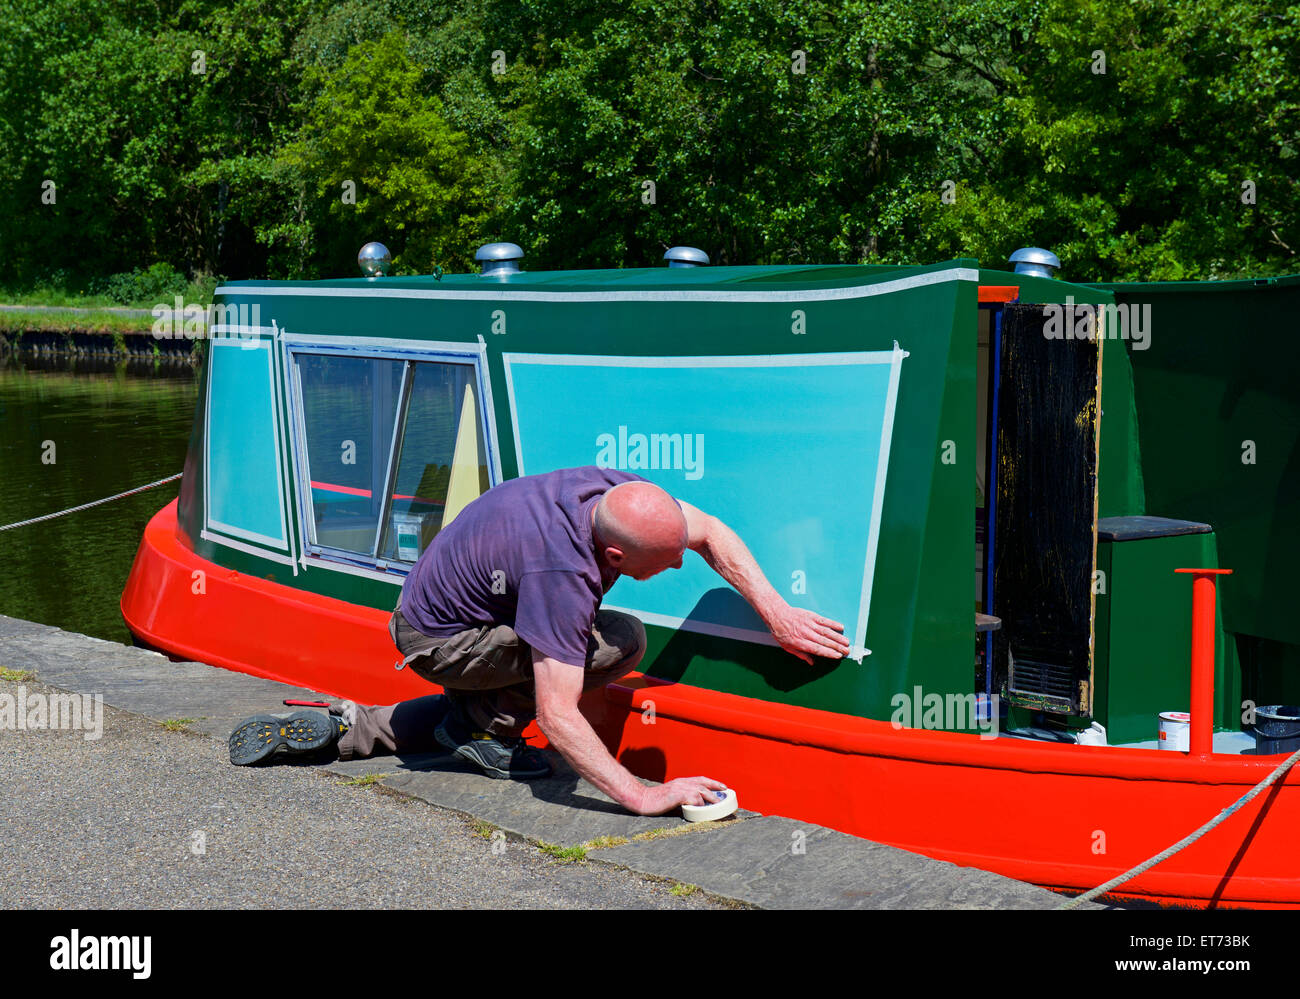 Man preparing narrowboat for painting, Leeds-Liverpool Canal, West Yorkshire, England UK - Stock Image